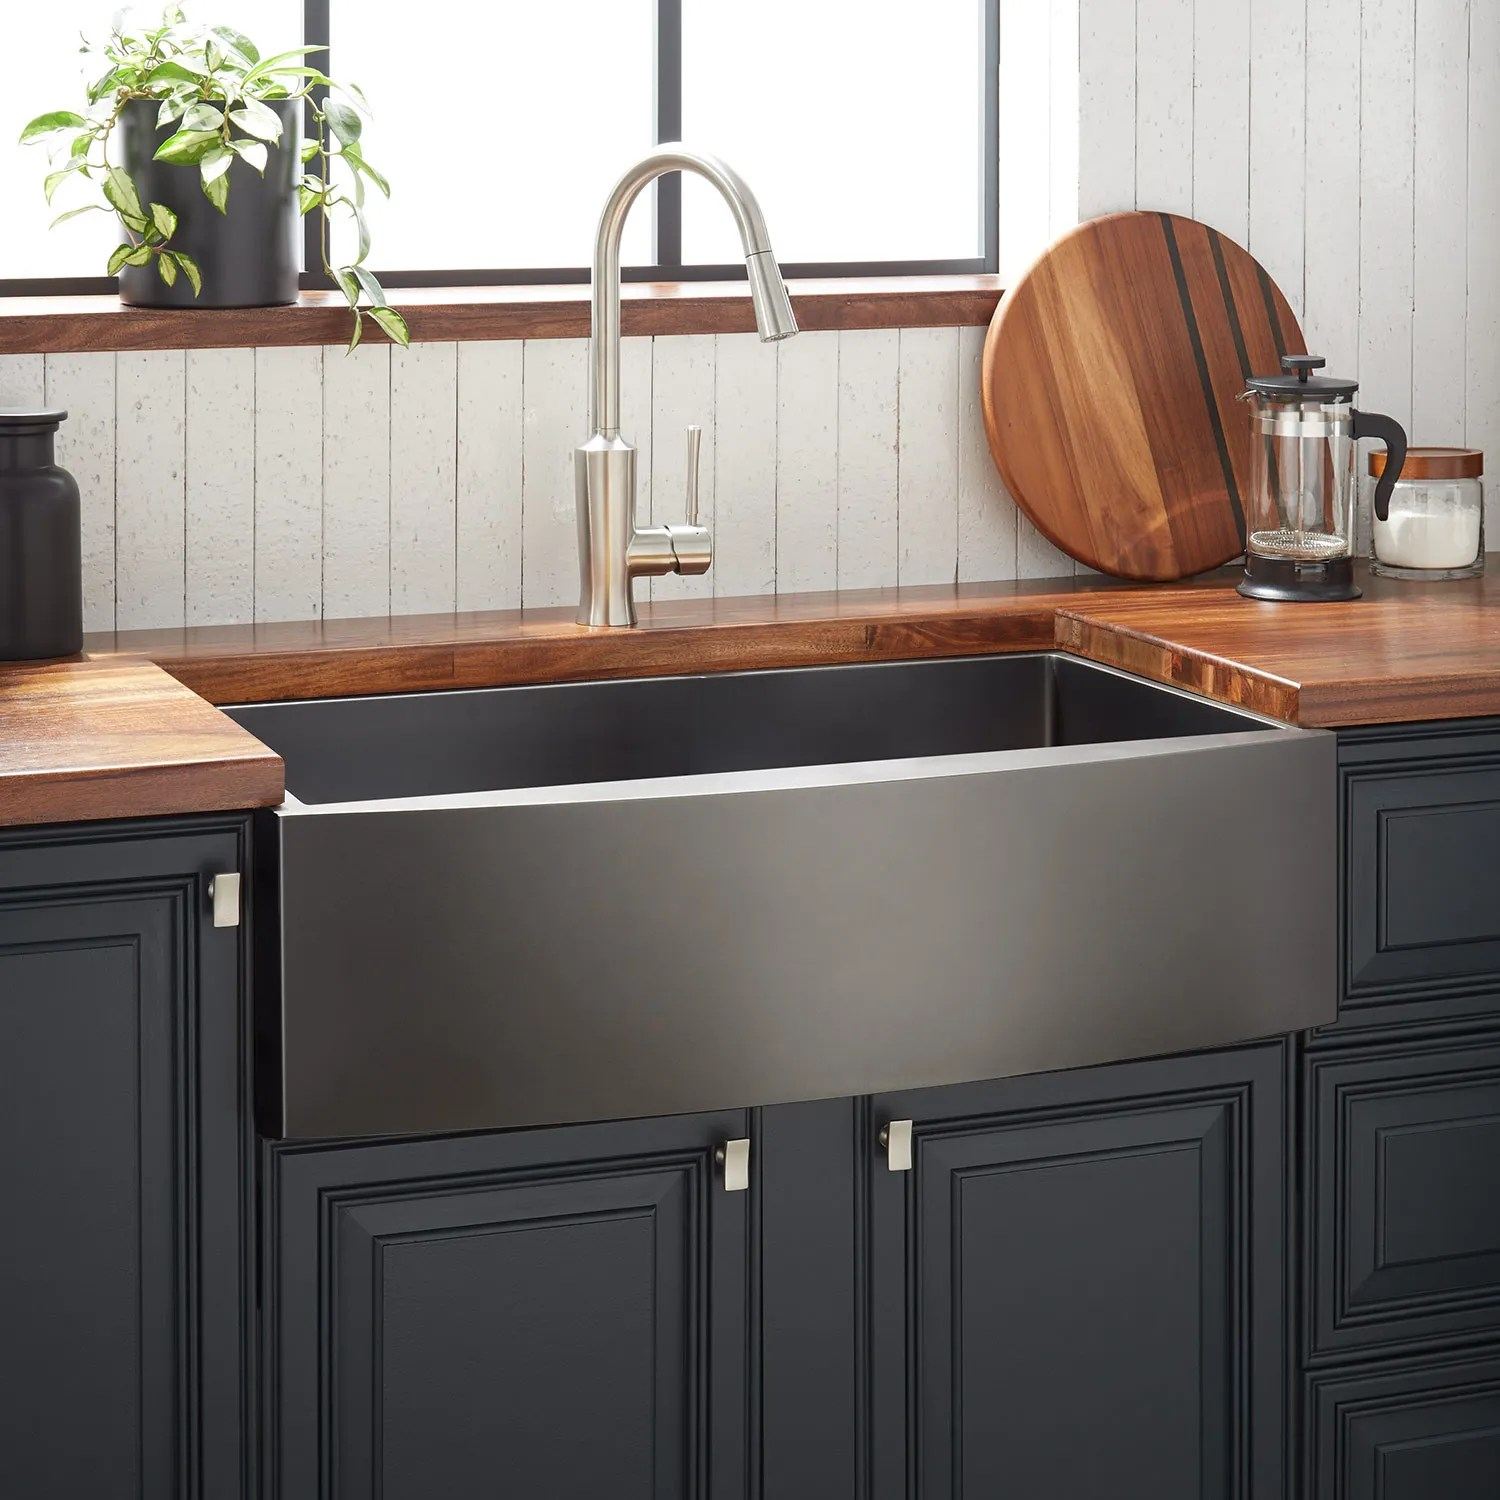 27 inch farmhouse sink archives